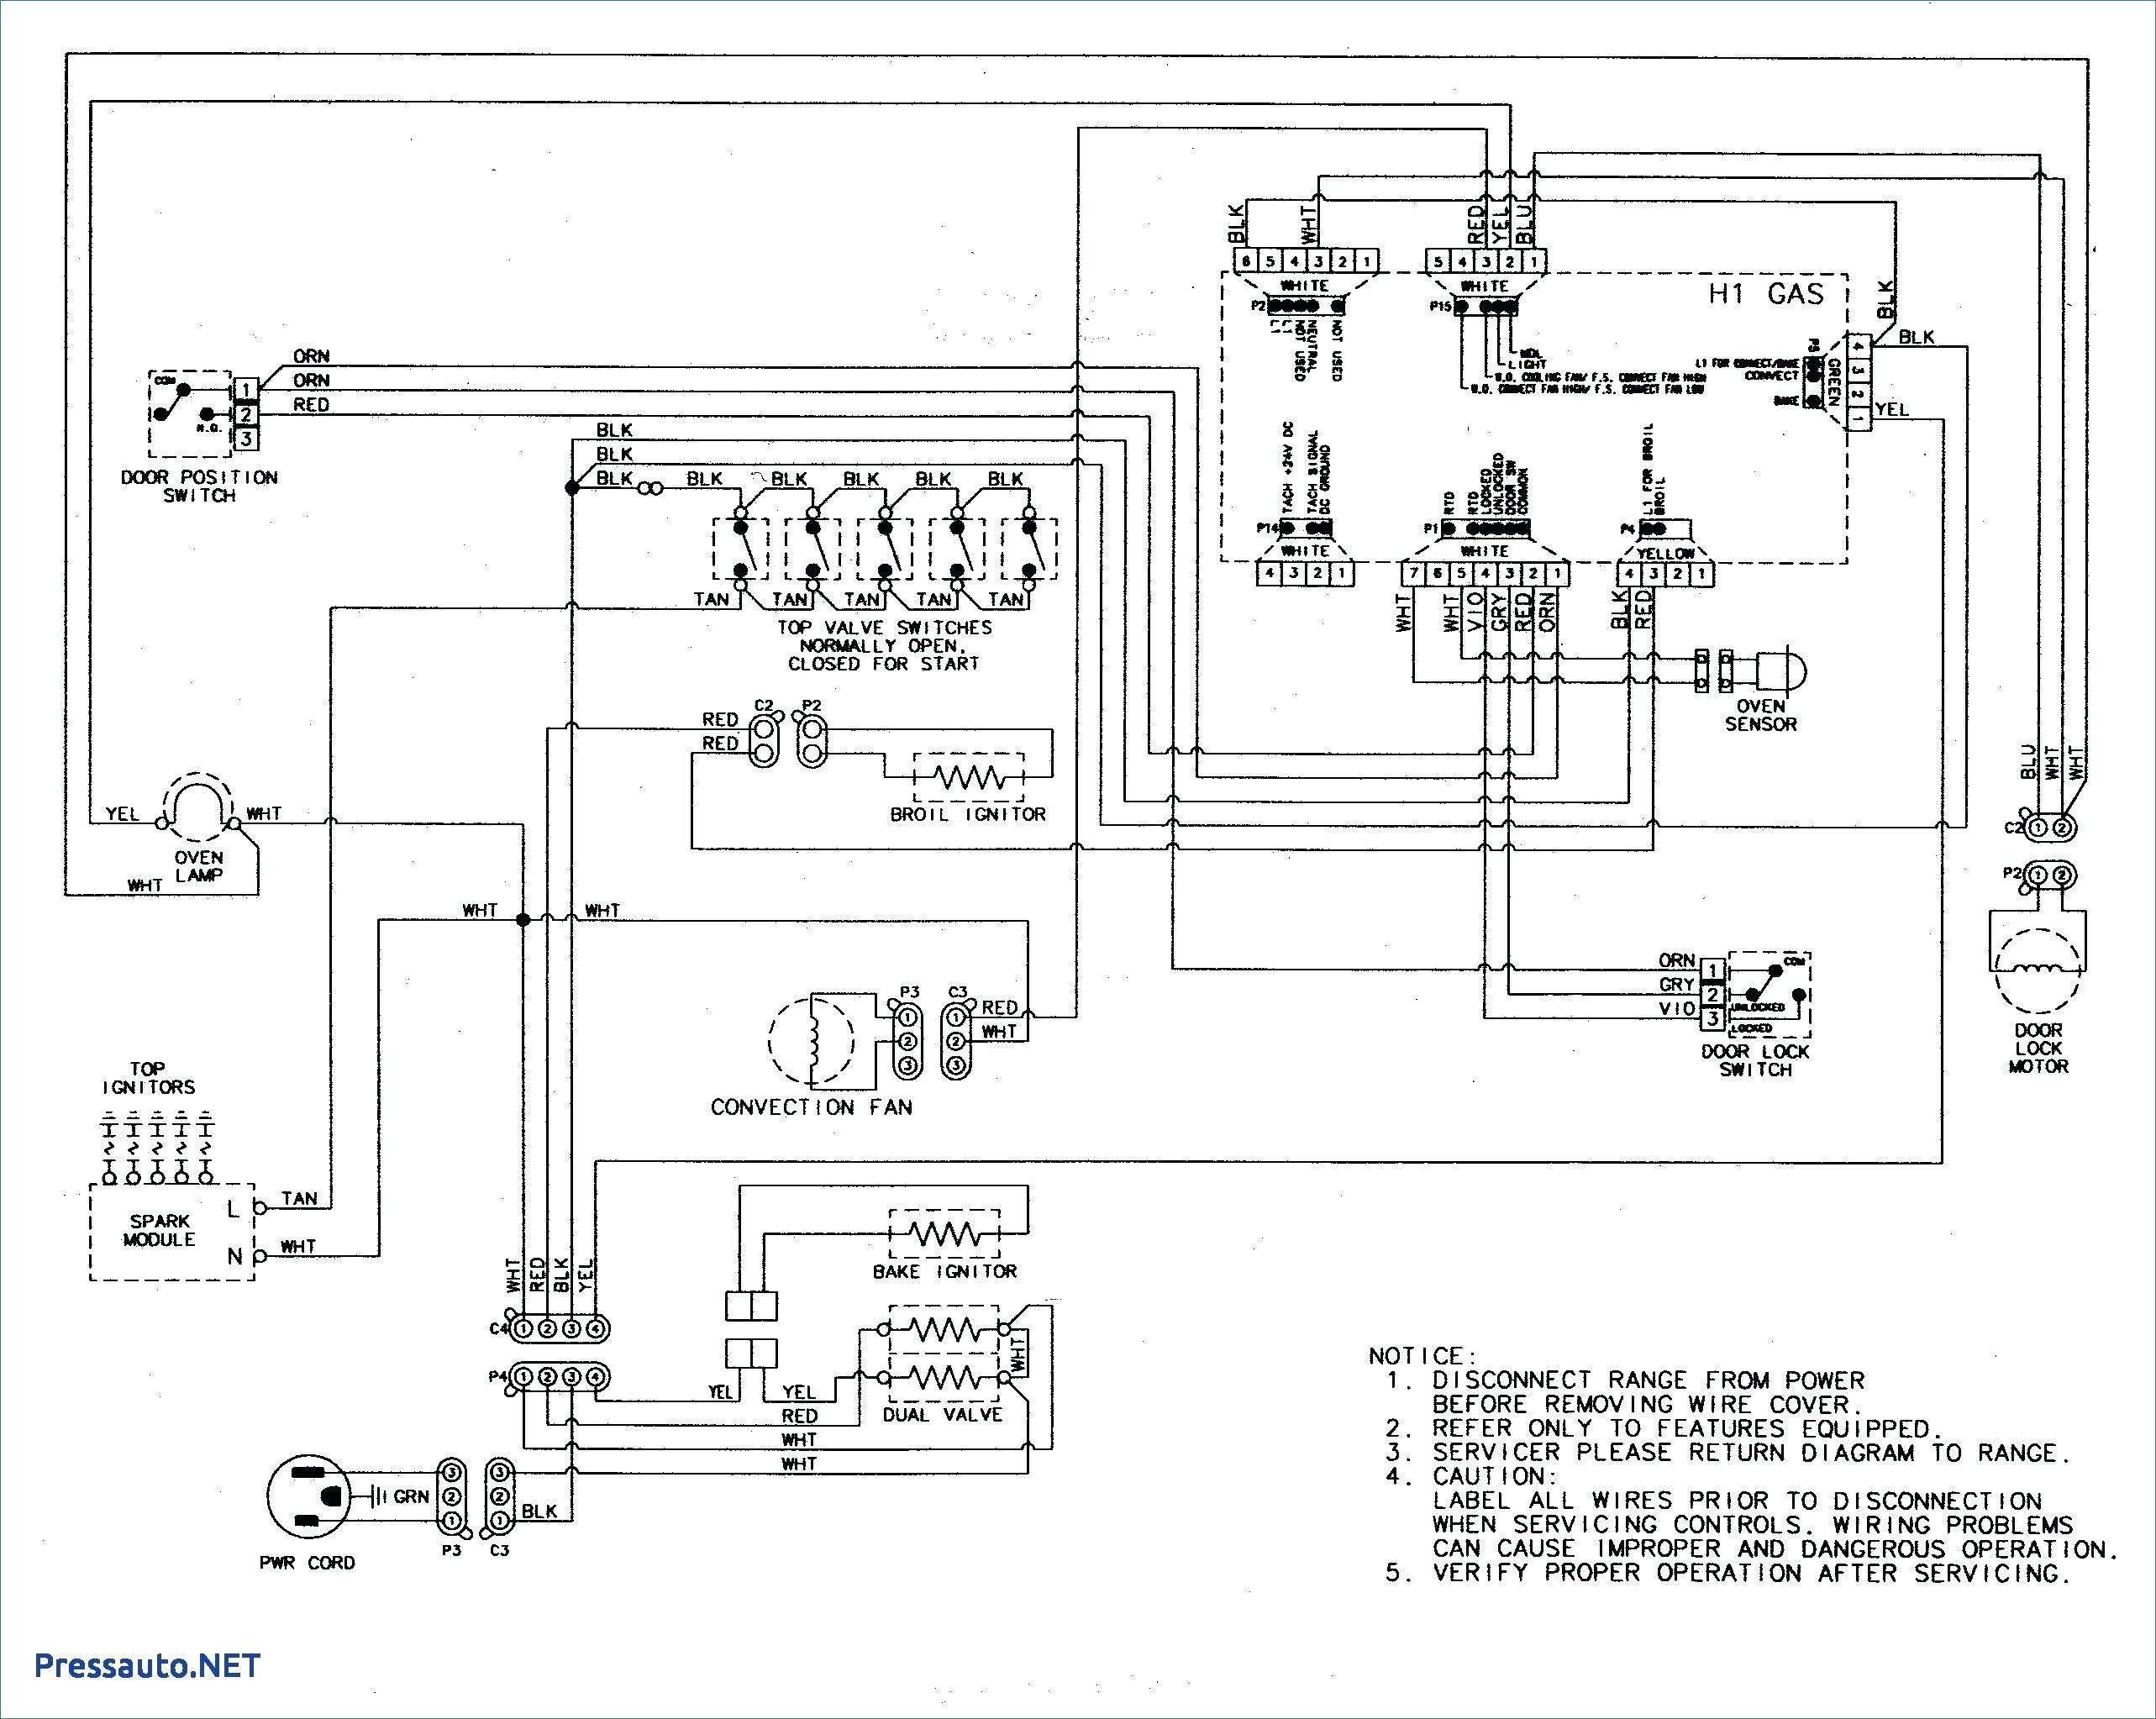 Diagram 2000 Saab 9 3 Viggen Wiring Diagram Full Version Hd Quality Wiring Diagram Marin Wiringl Barbieri23 It